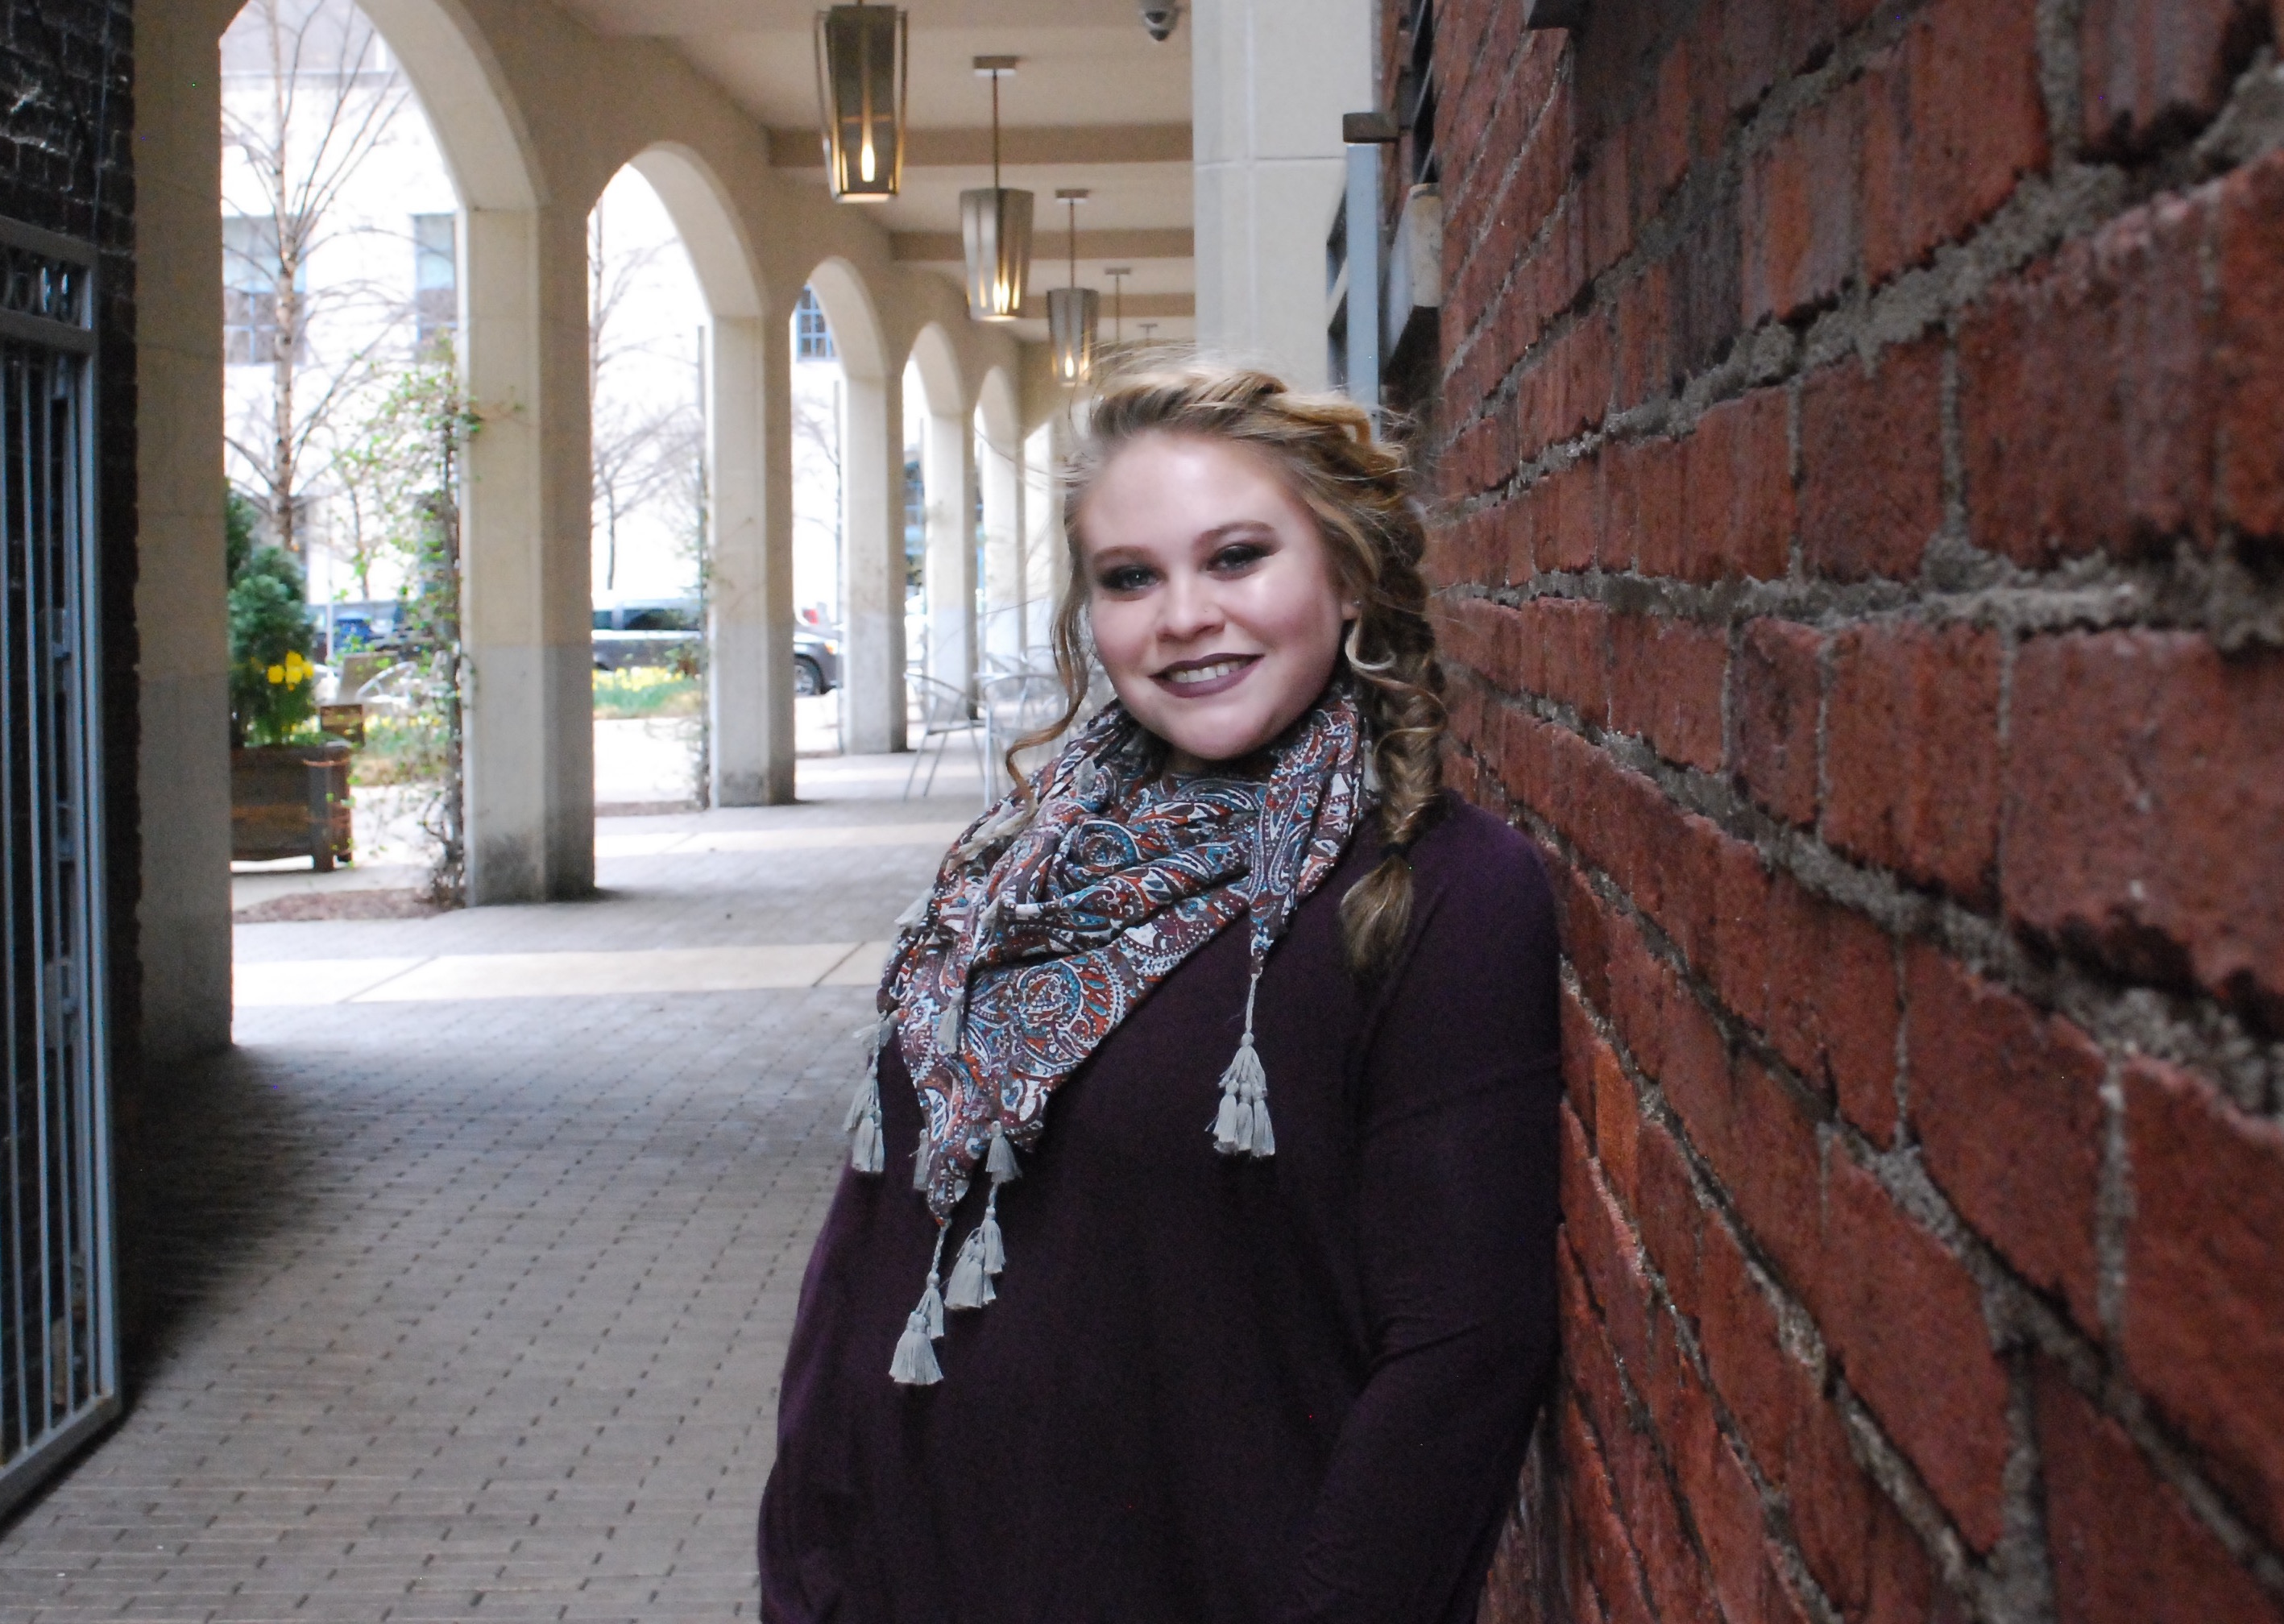 Pictured is Mary Moses, Creative Writing Major